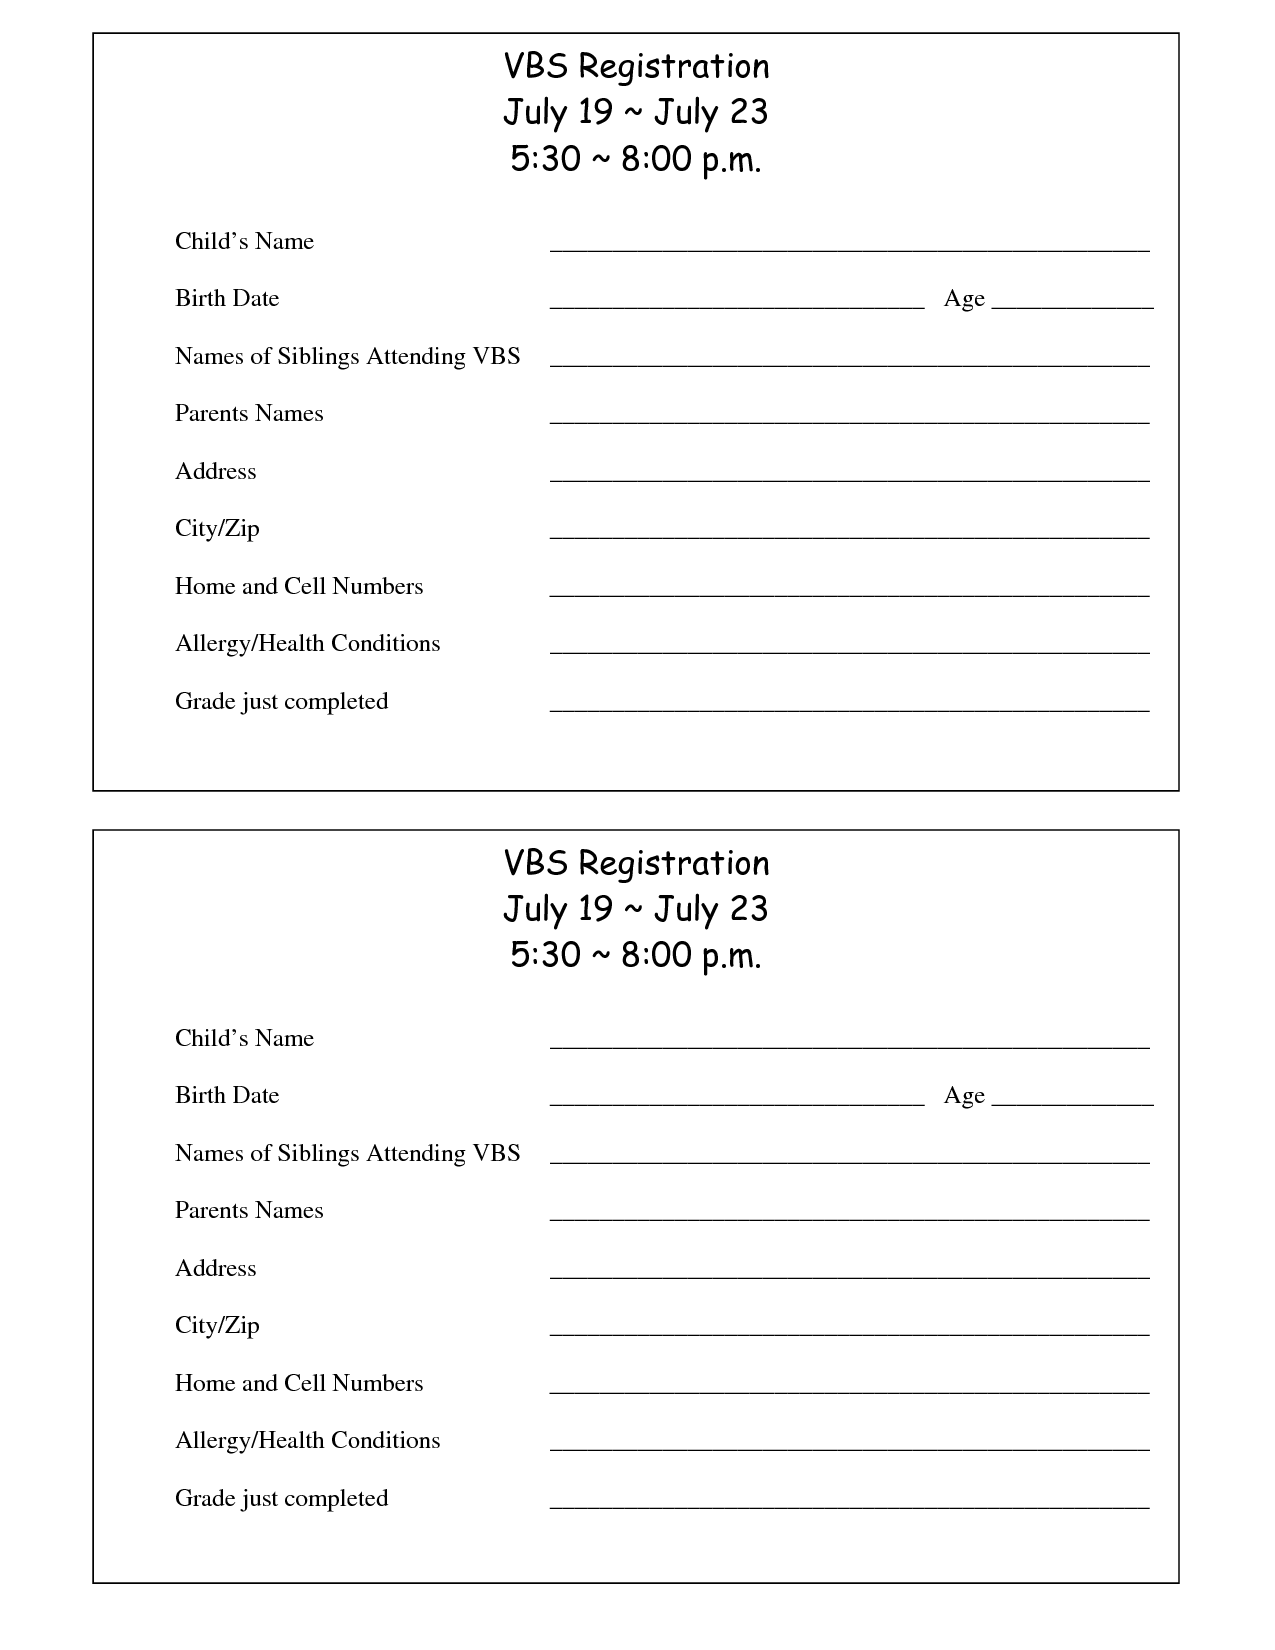 Printable VBS Registration Form Template | VBS | Pinterest